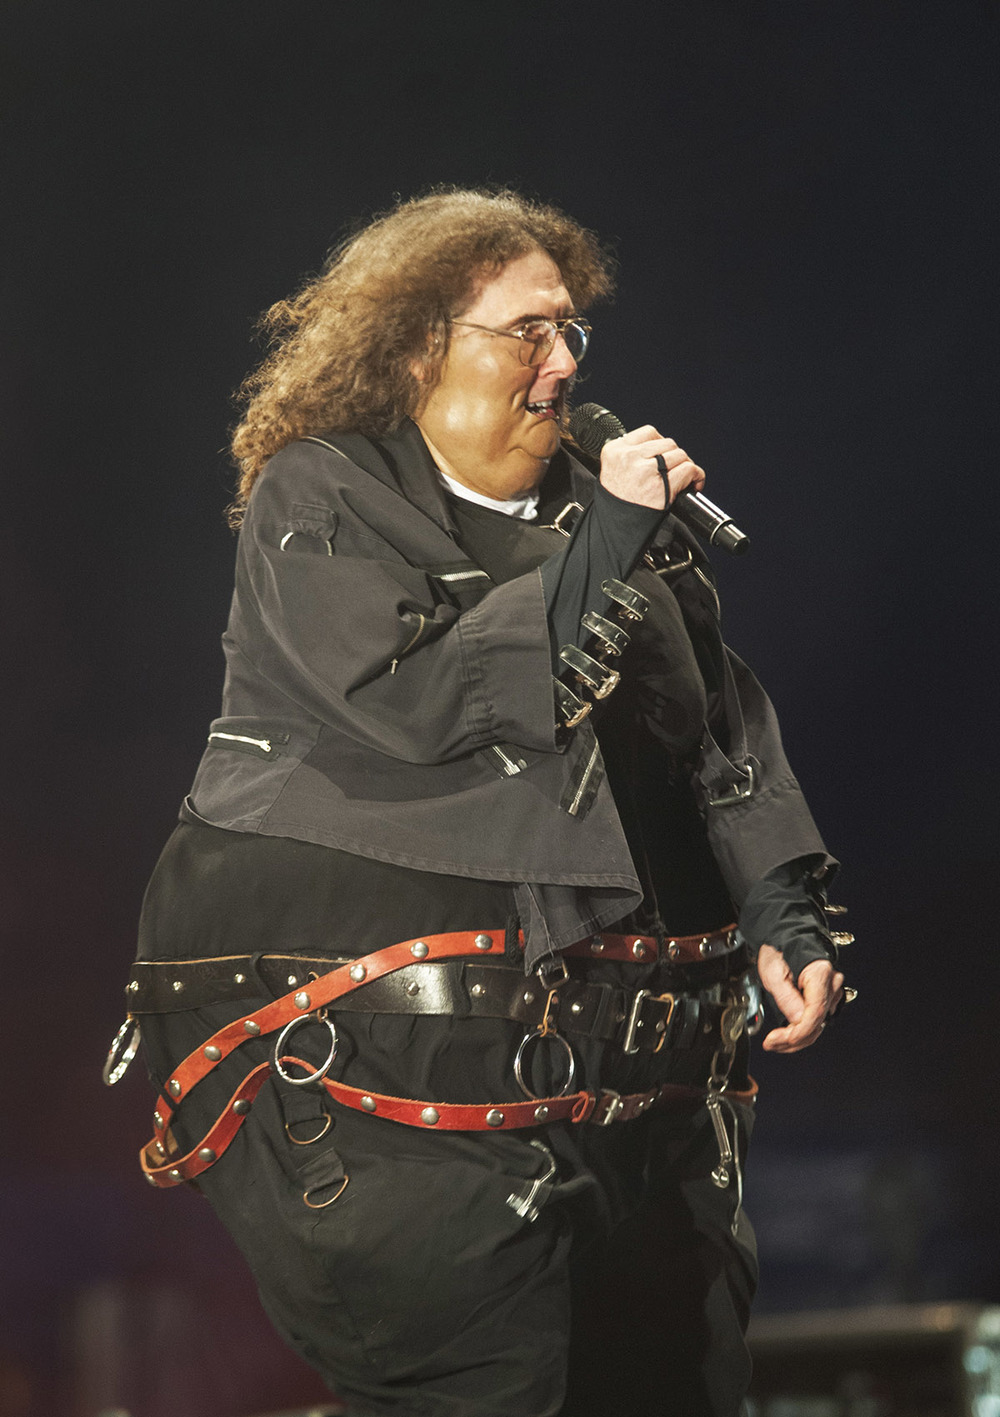 'Wei  rd   Al' Yankovic performs on night one of the 2015   Falls Festival at Mt Duneed Estate - image courtesy of Kirsty Umback